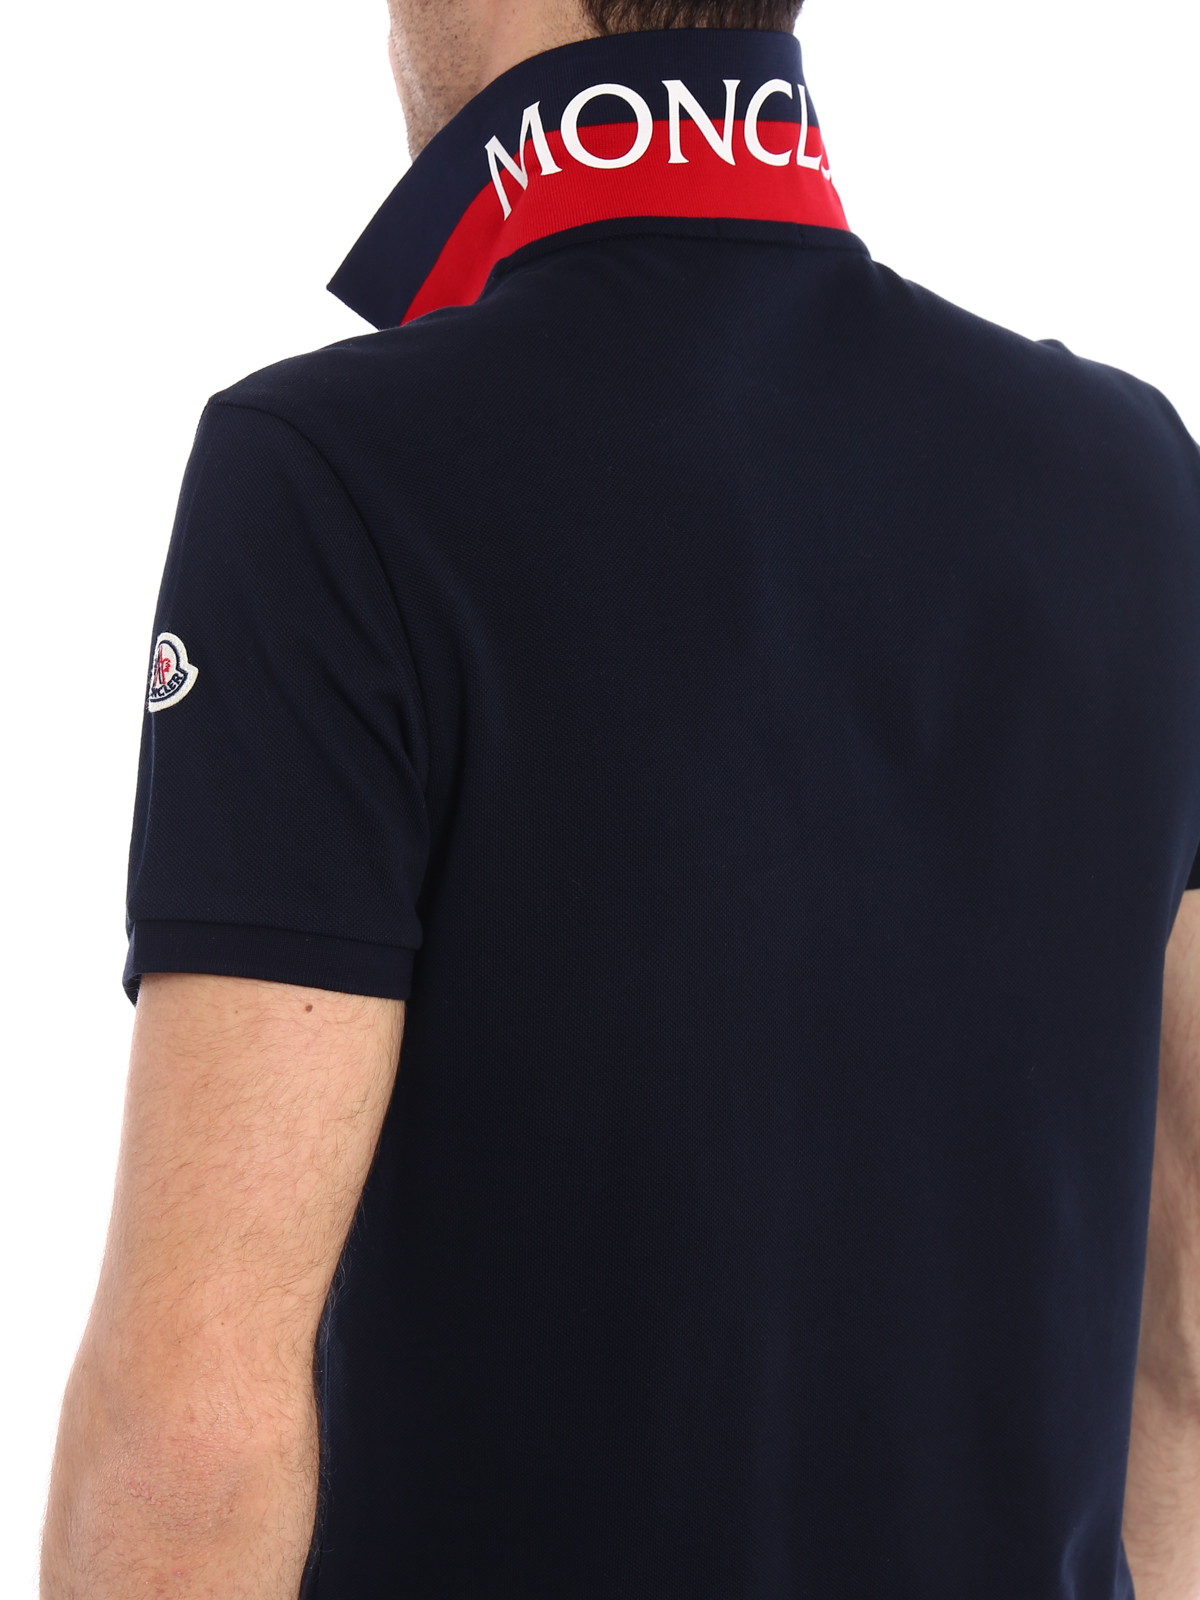 MONCLER buy online Total navy blue polo shirt